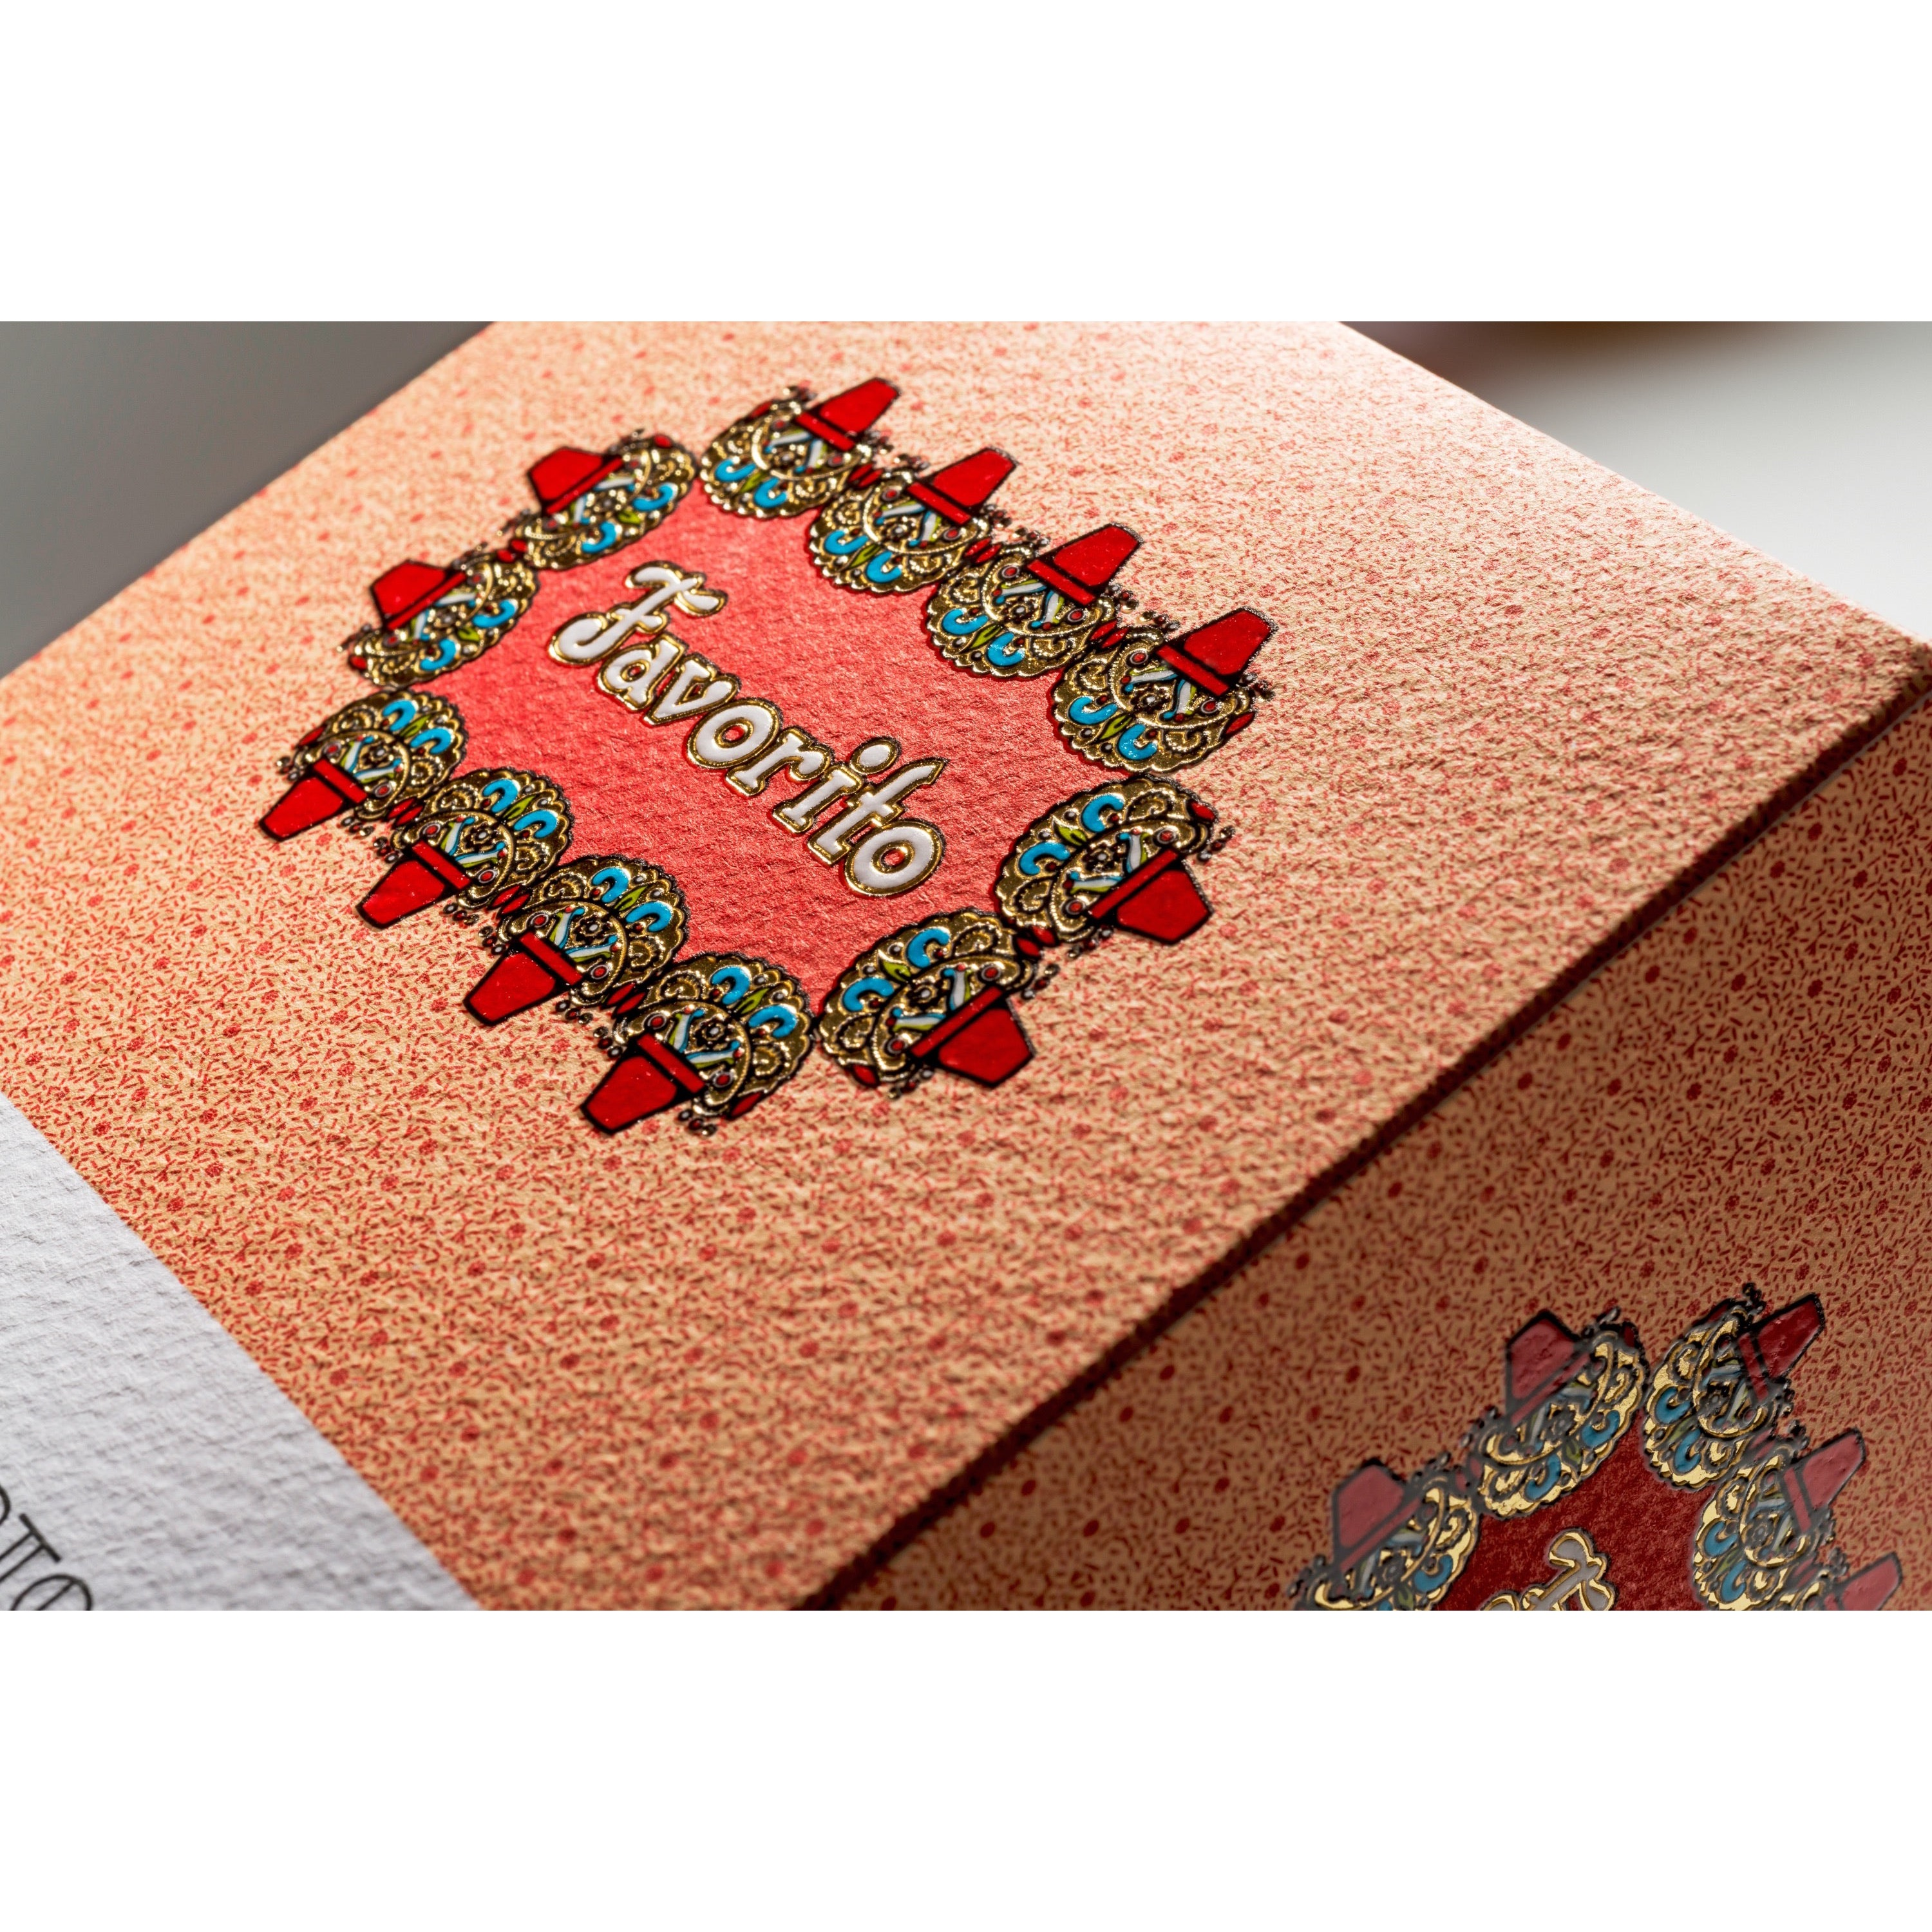 Geurkaars Deco Collectie - Favorito / Red Poppy